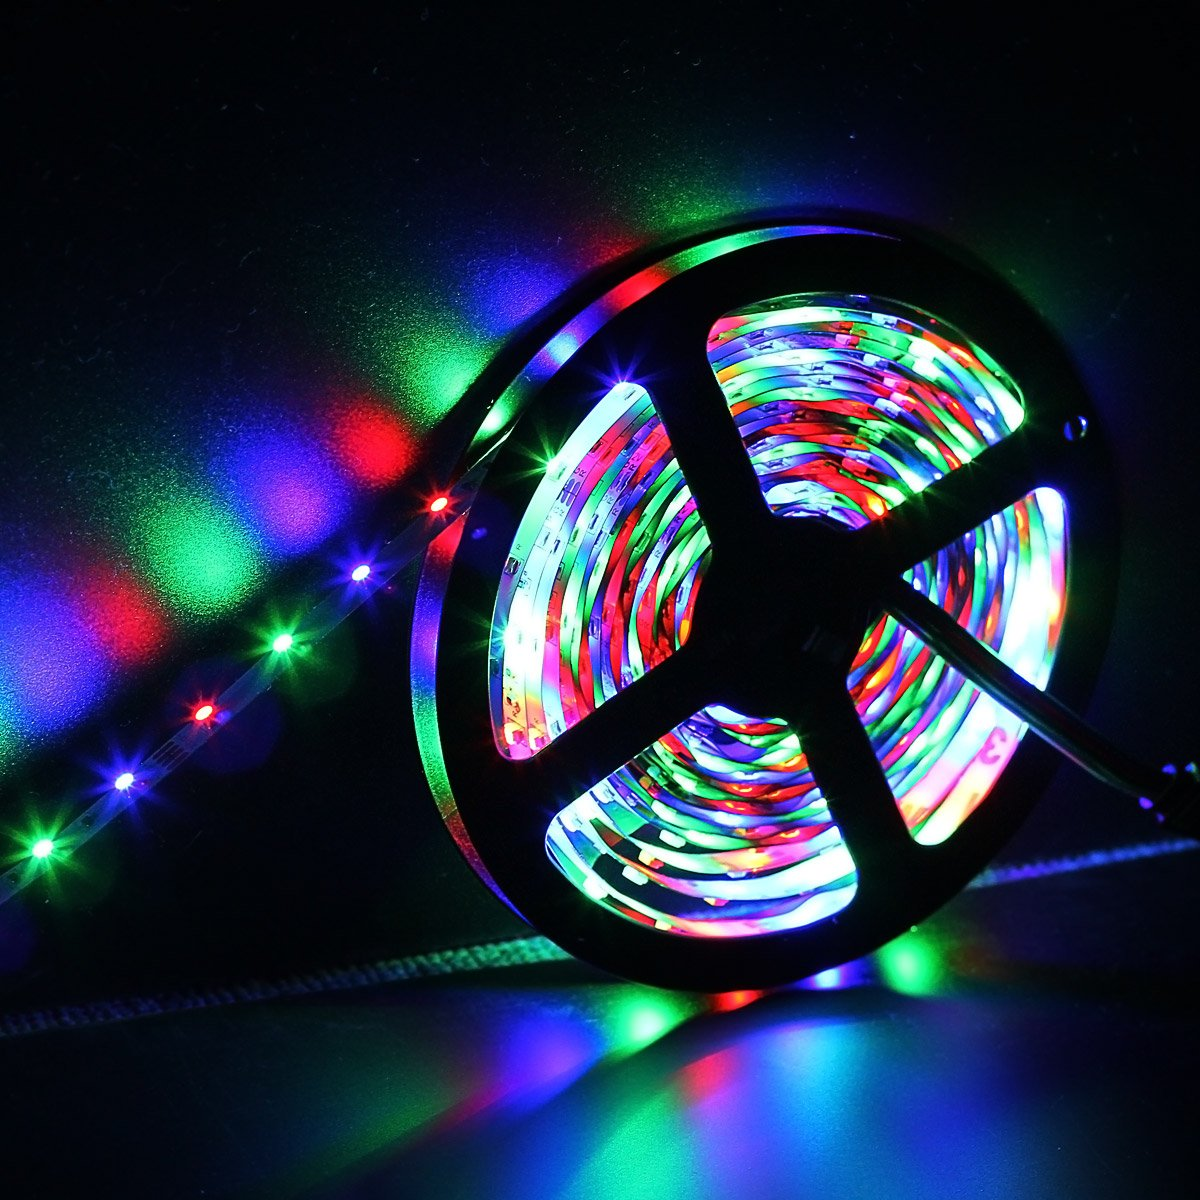 SUPERNIGHT 5M/16.4 Ft SMD 3528 RGB 300 LED Color Changing Kit with Flexible Strip Light+24 Key IR Remote Control+ Power Supply by SUPERNIGHT (Image #7)